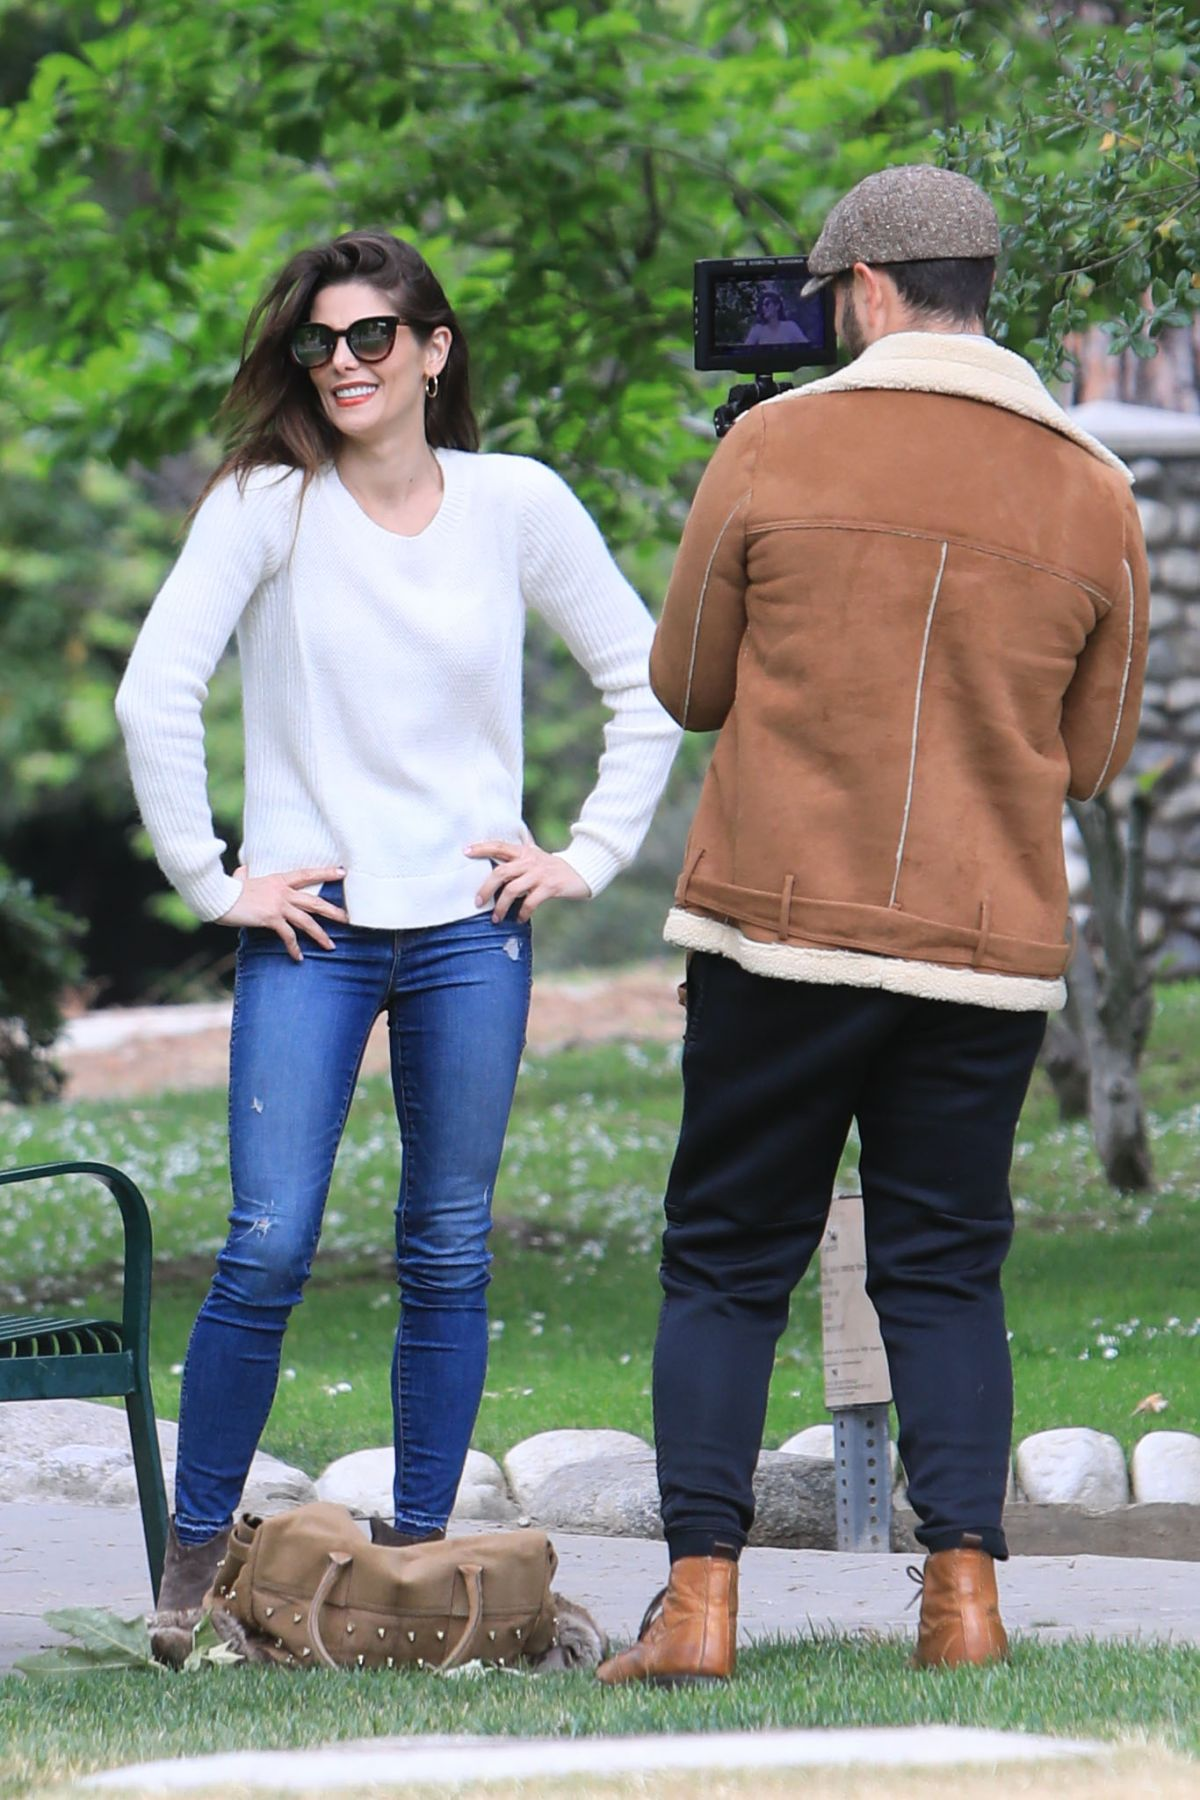 ASHLEY GREENE at a Park in Beverly Hills 05/07/2019 ...